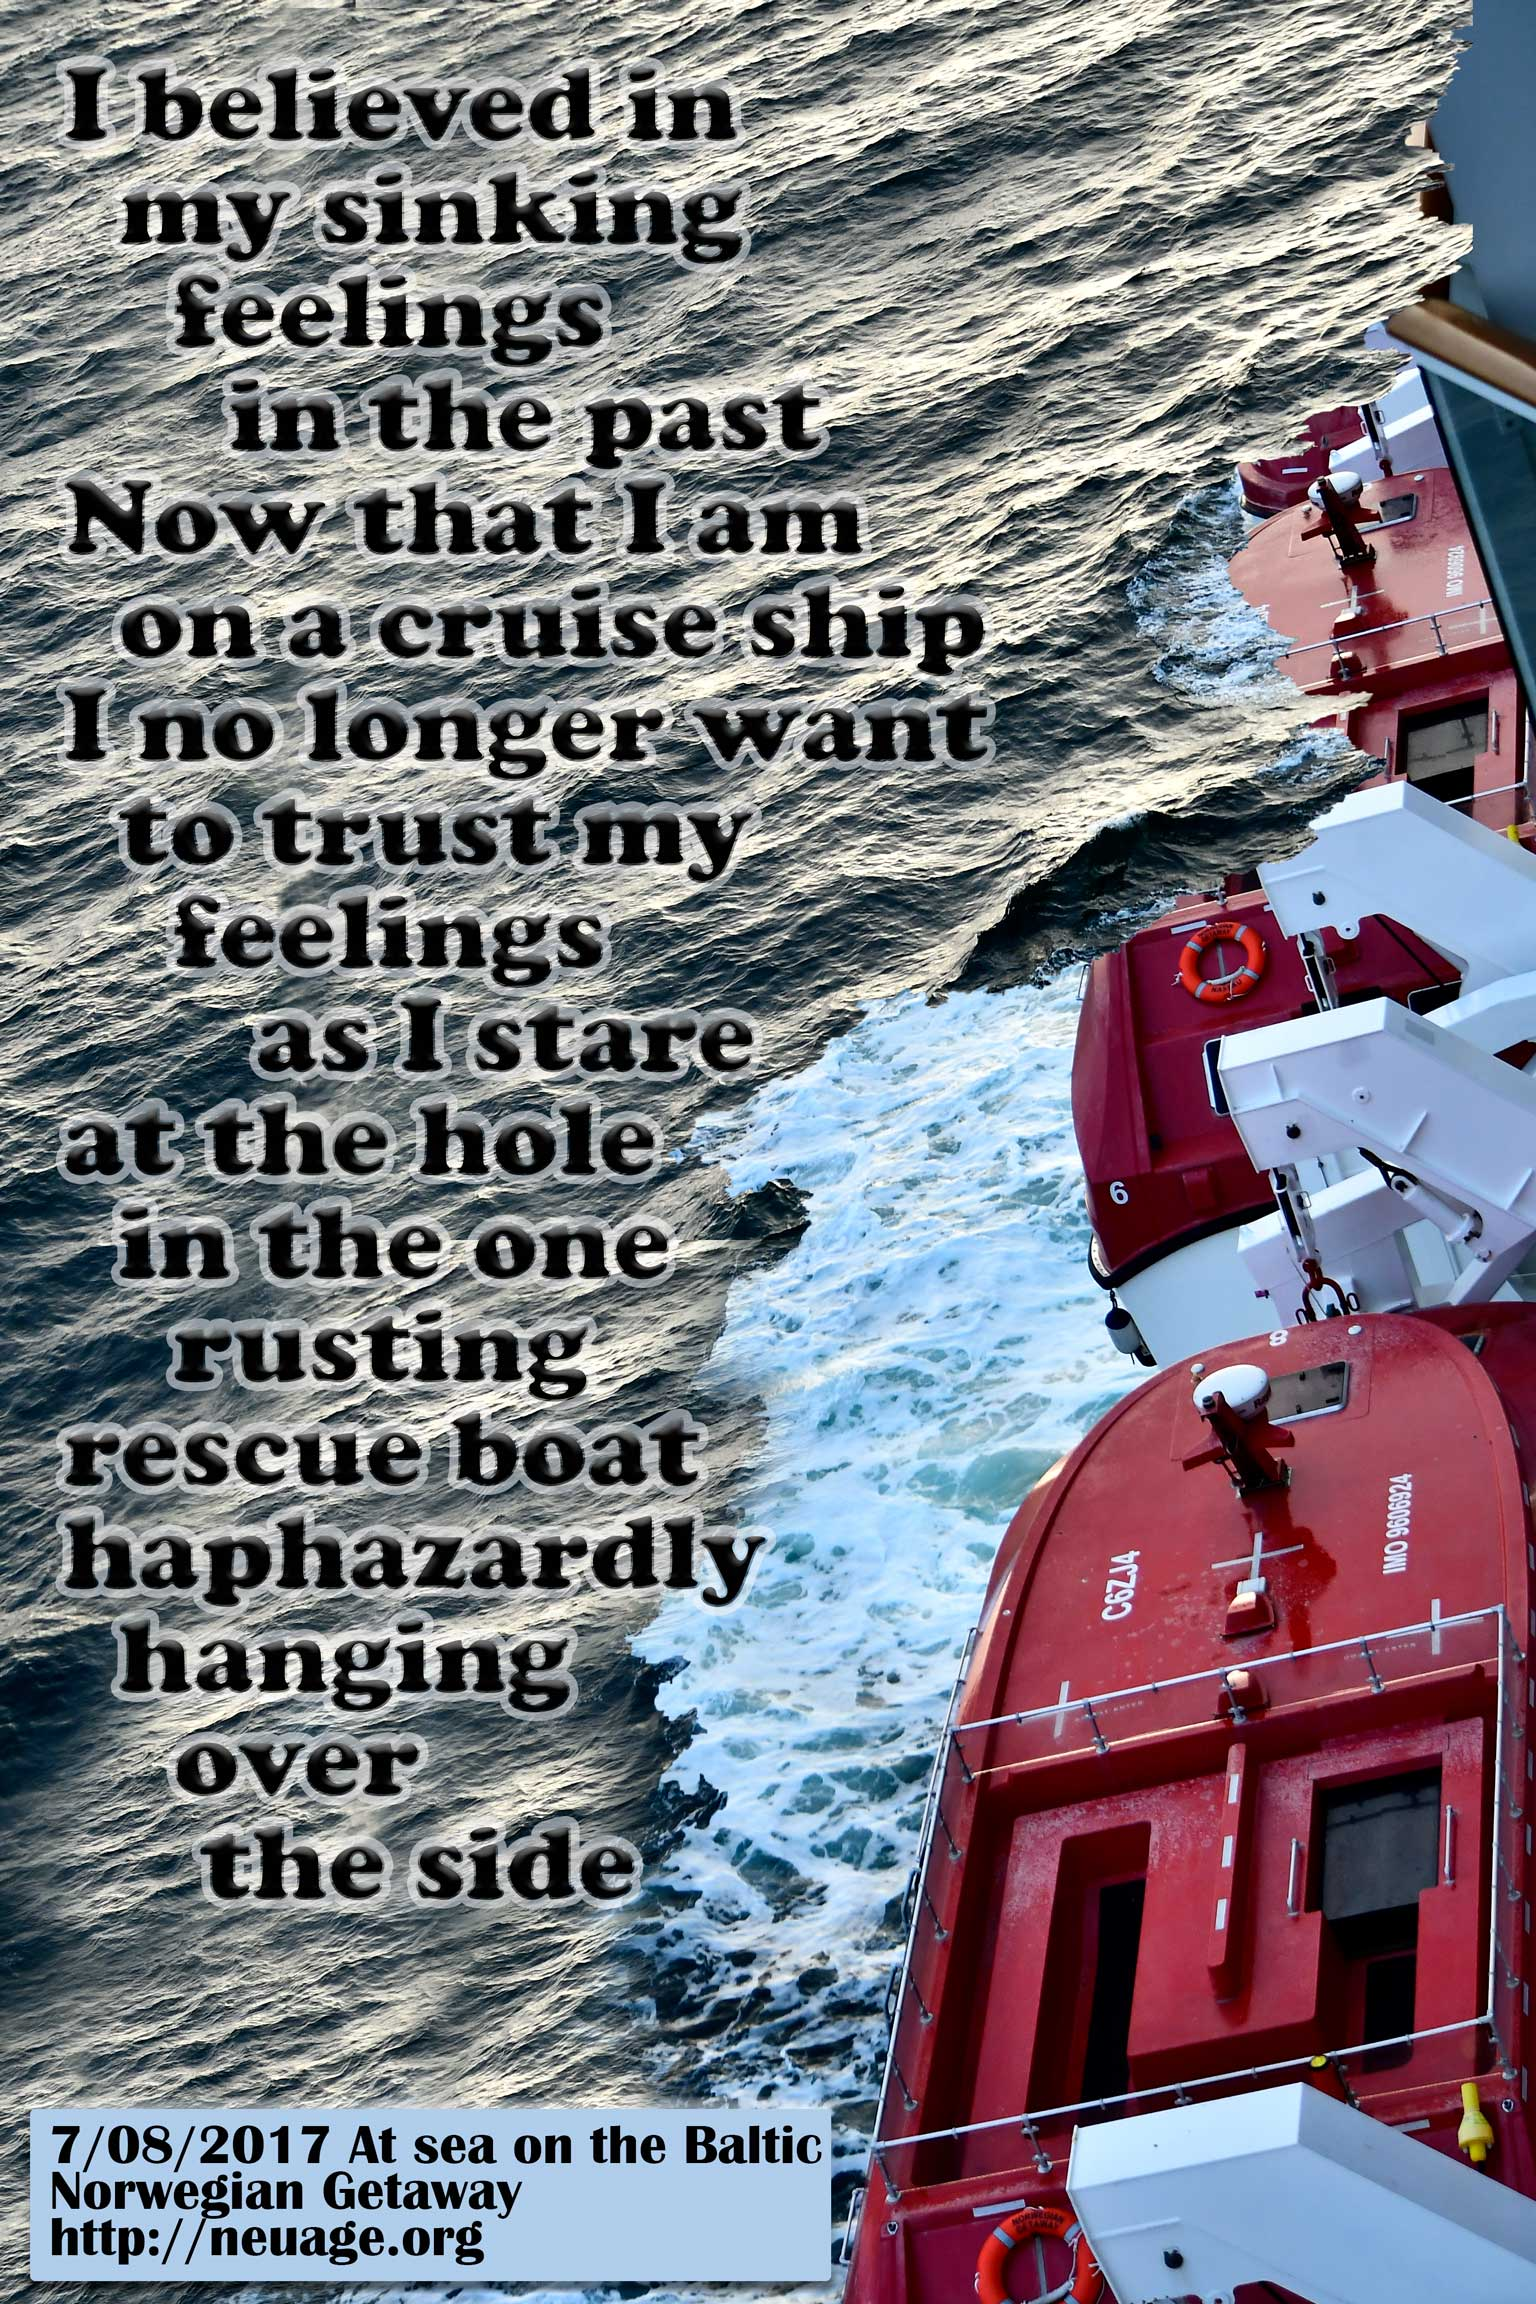 I believed in my sinking feelings in the past Now that I am on a cruise ship I no longer want to trust my feelings as I stare at the hole in the one rusting rescue boat haphazardly hanging over the side